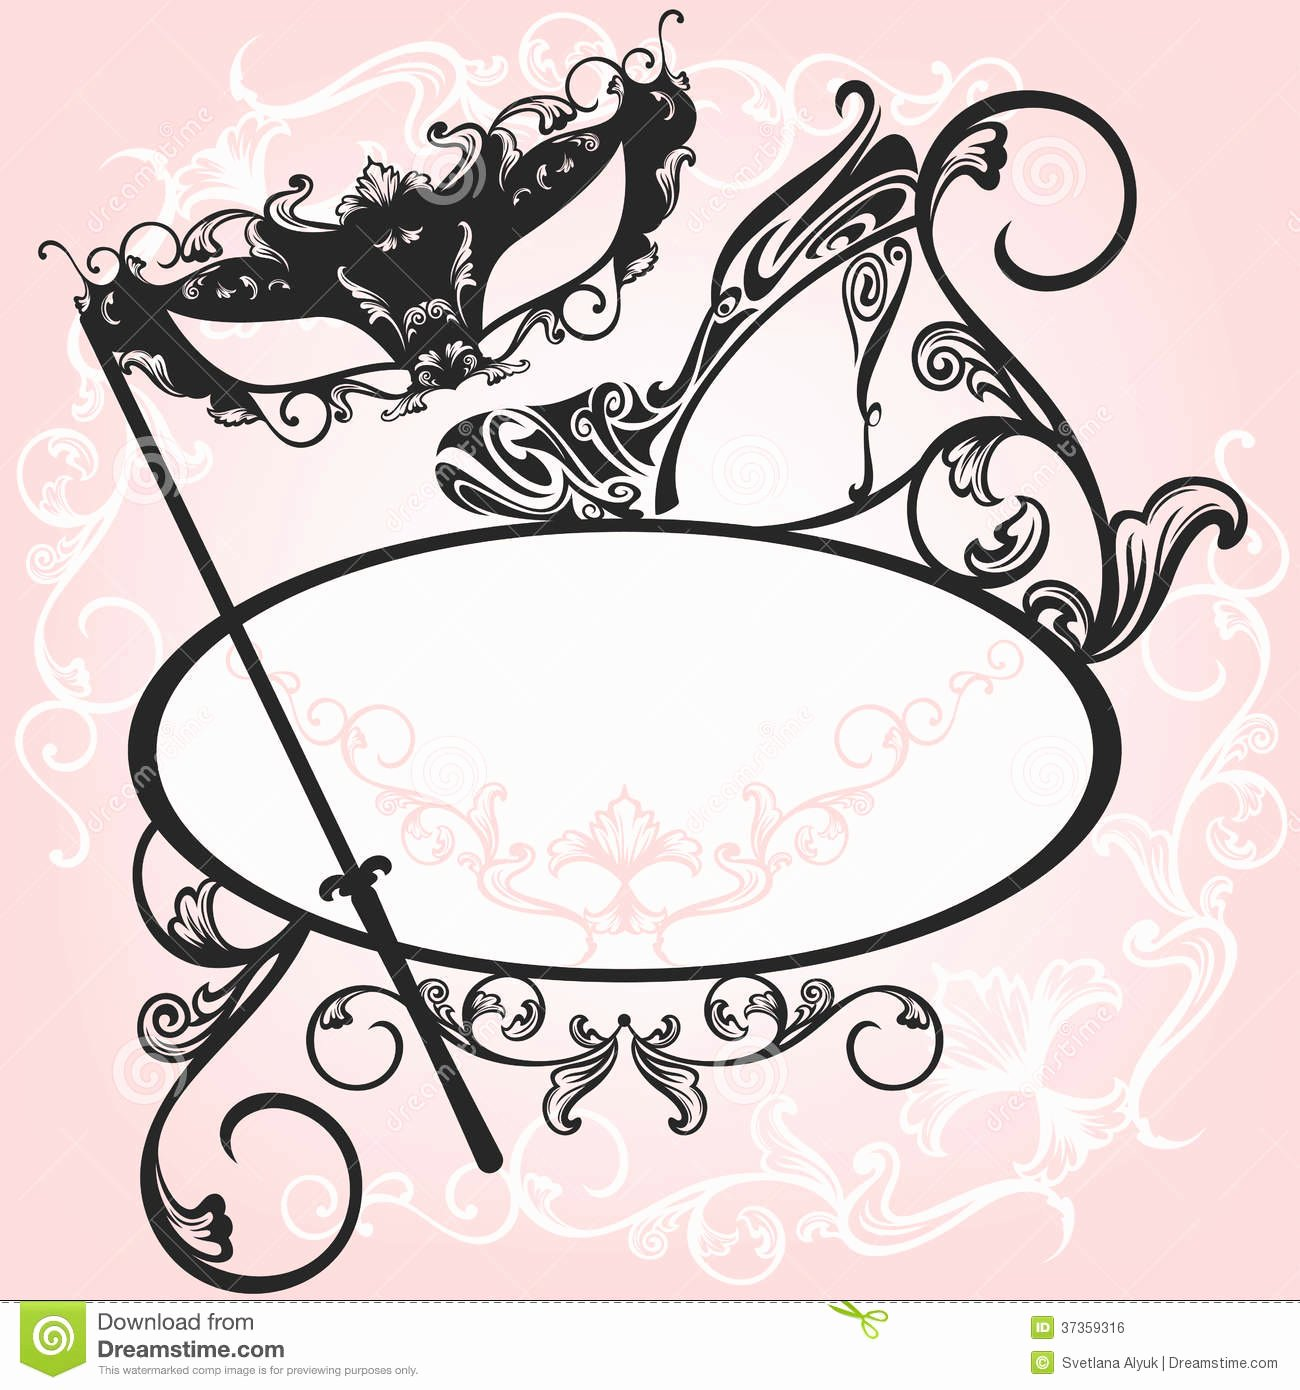 Masquerade Invitations Template Free Awesome Masquerade Party Invitations Templates